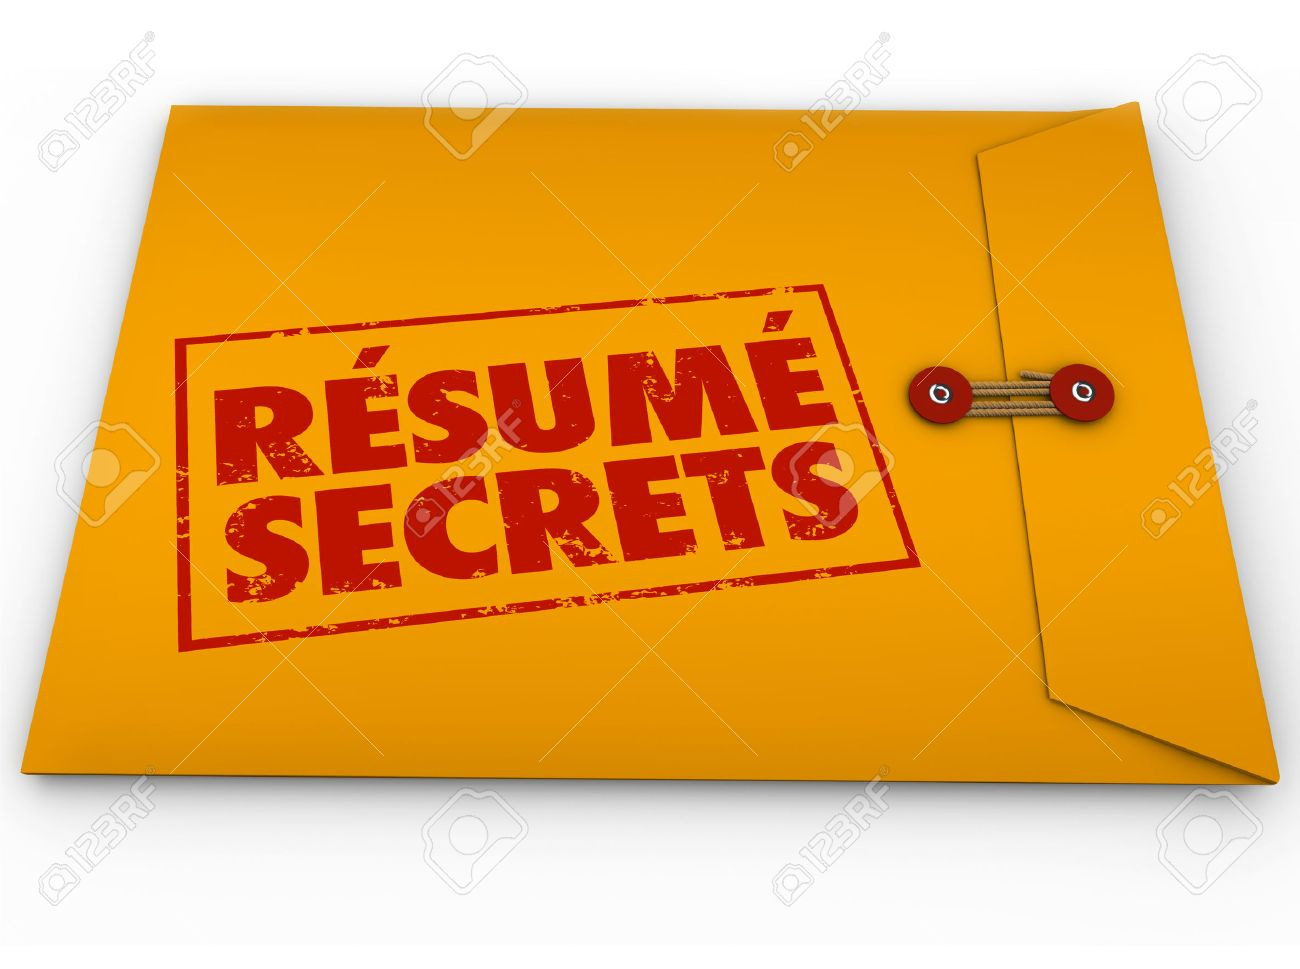 Resume Stock Photos. Royalty Free Resume Images